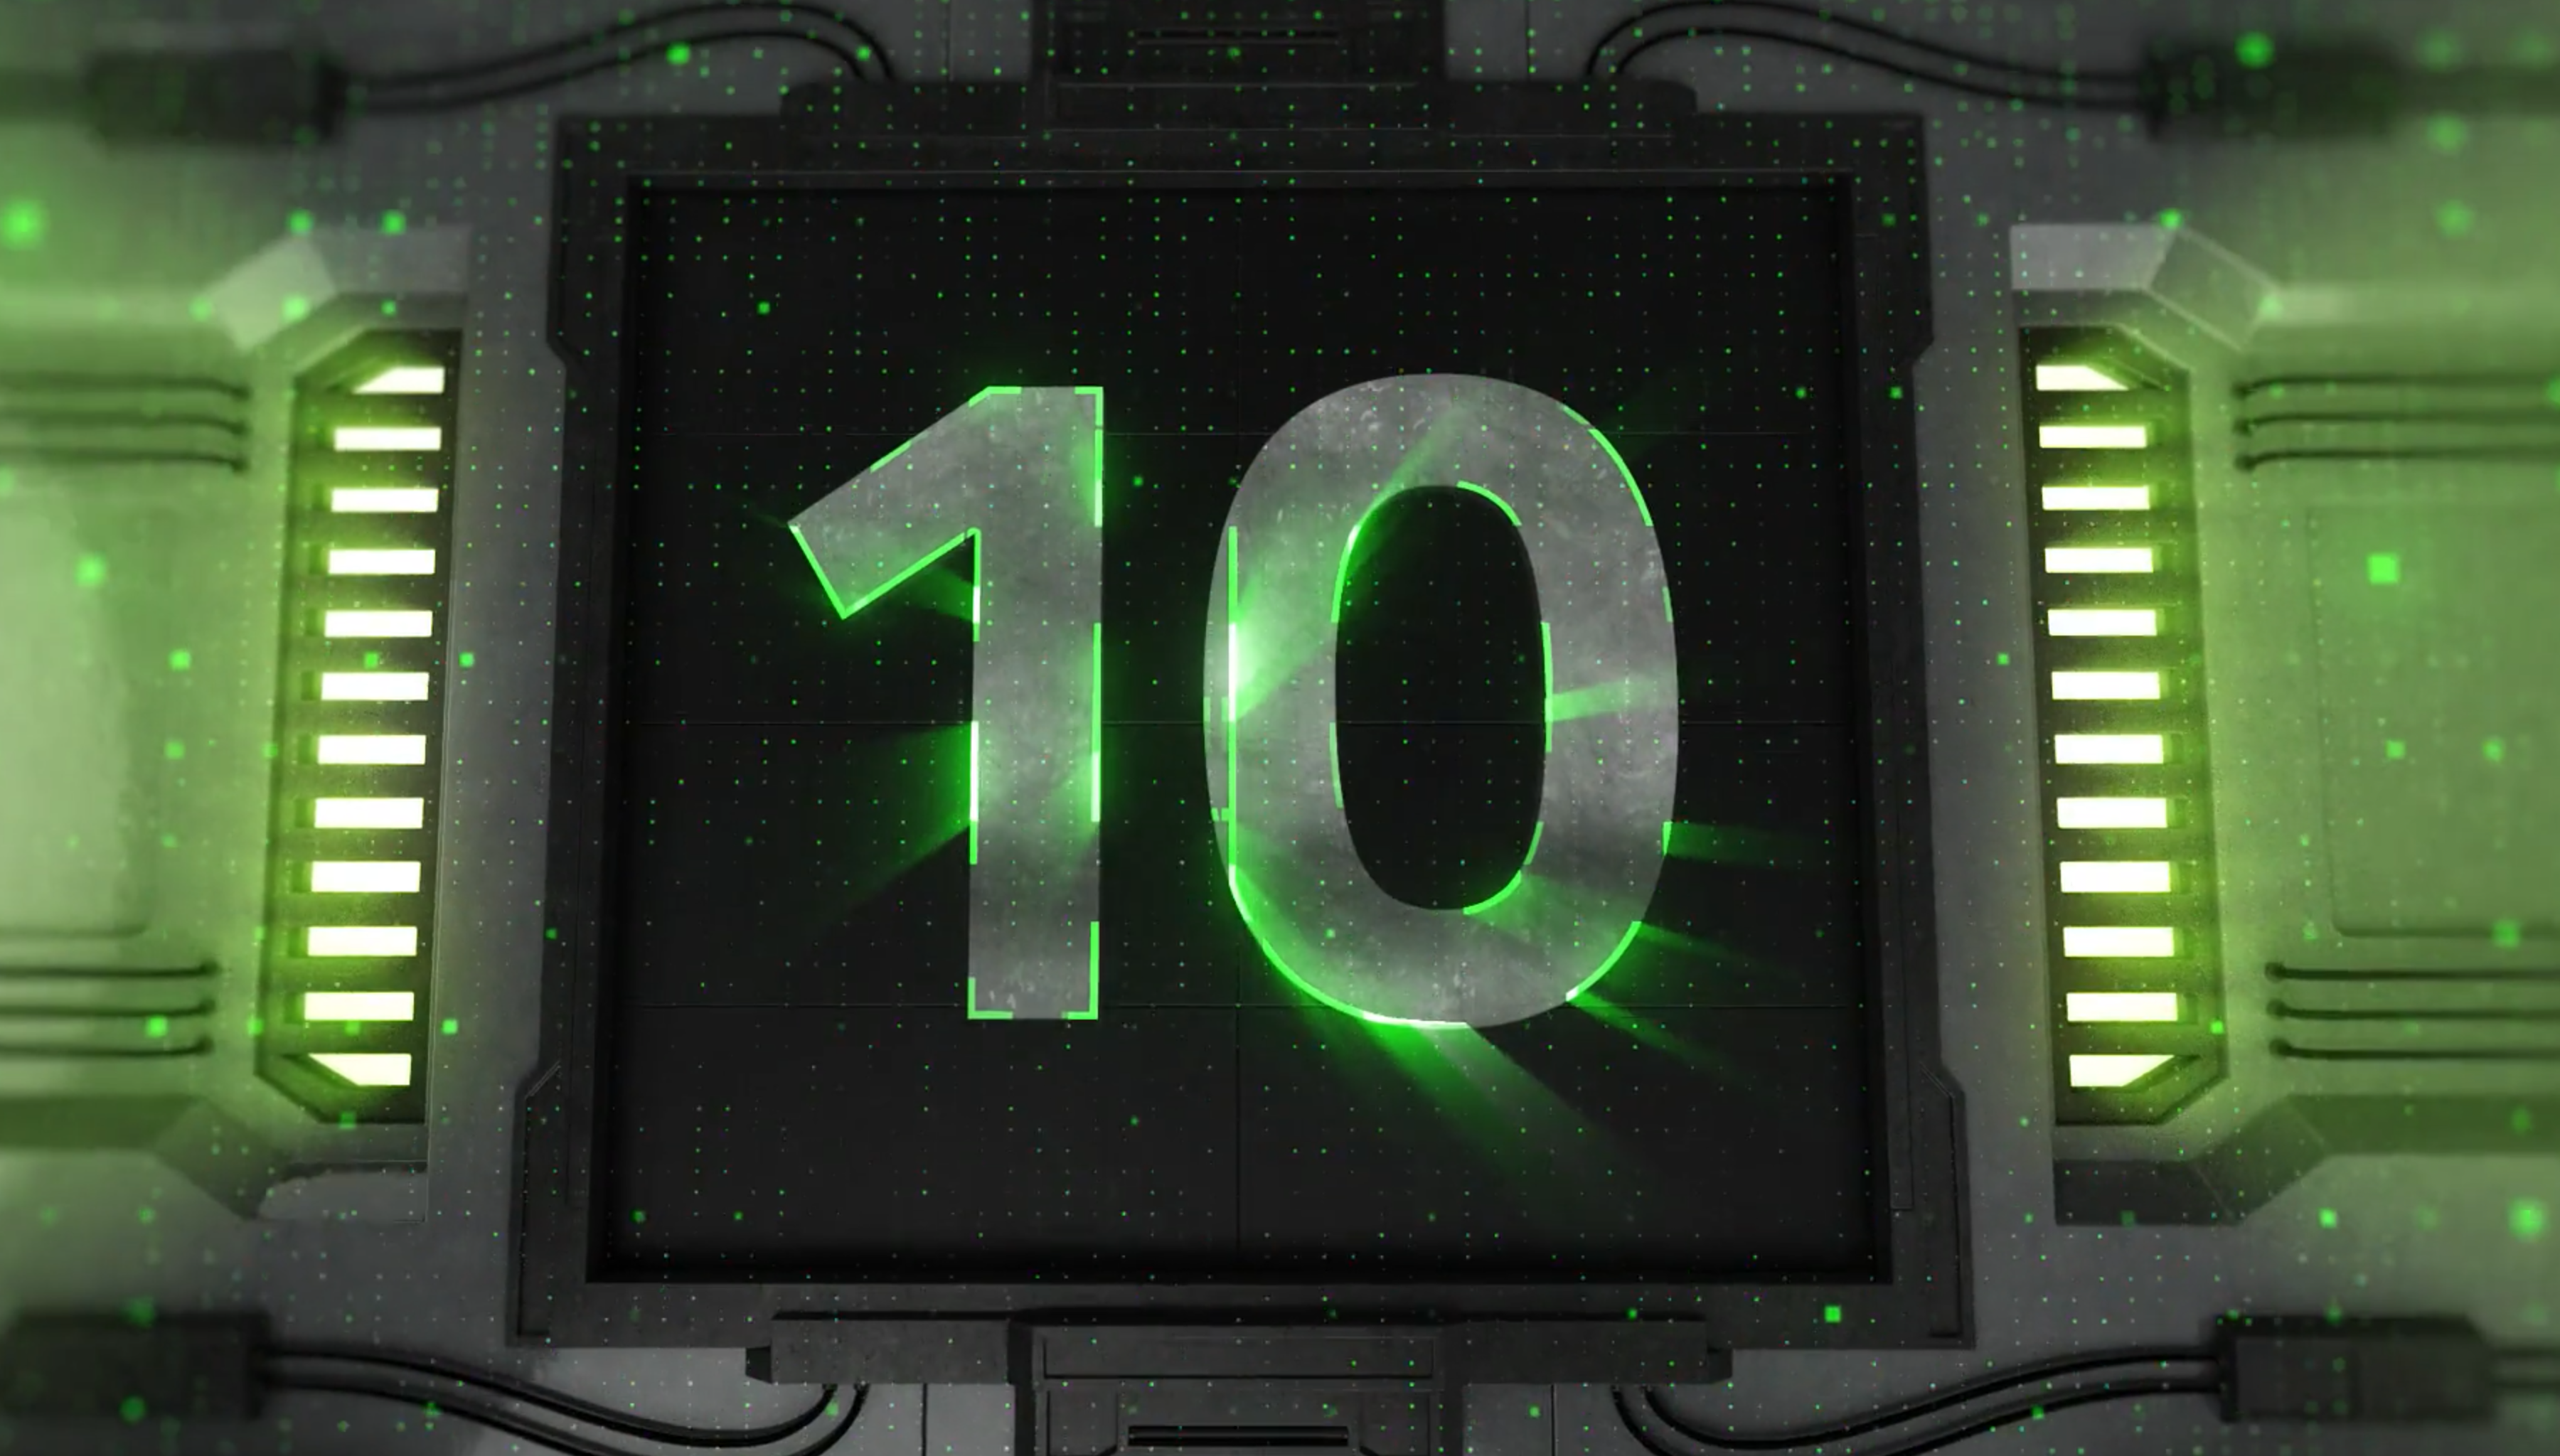 Number 10 still from Top 10 lasers facts video